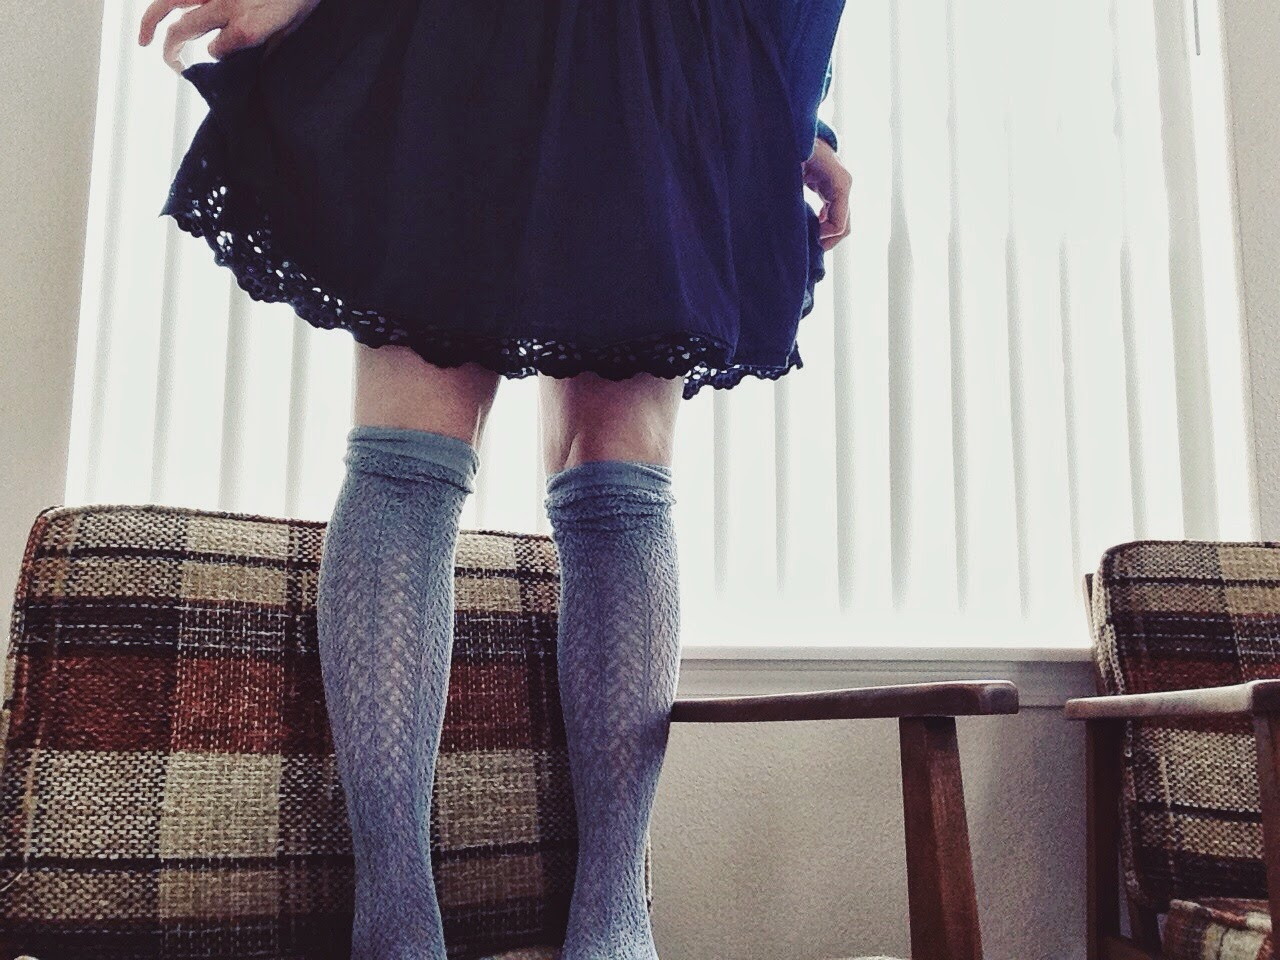 knee+highs+and+lace+detail.jpeg